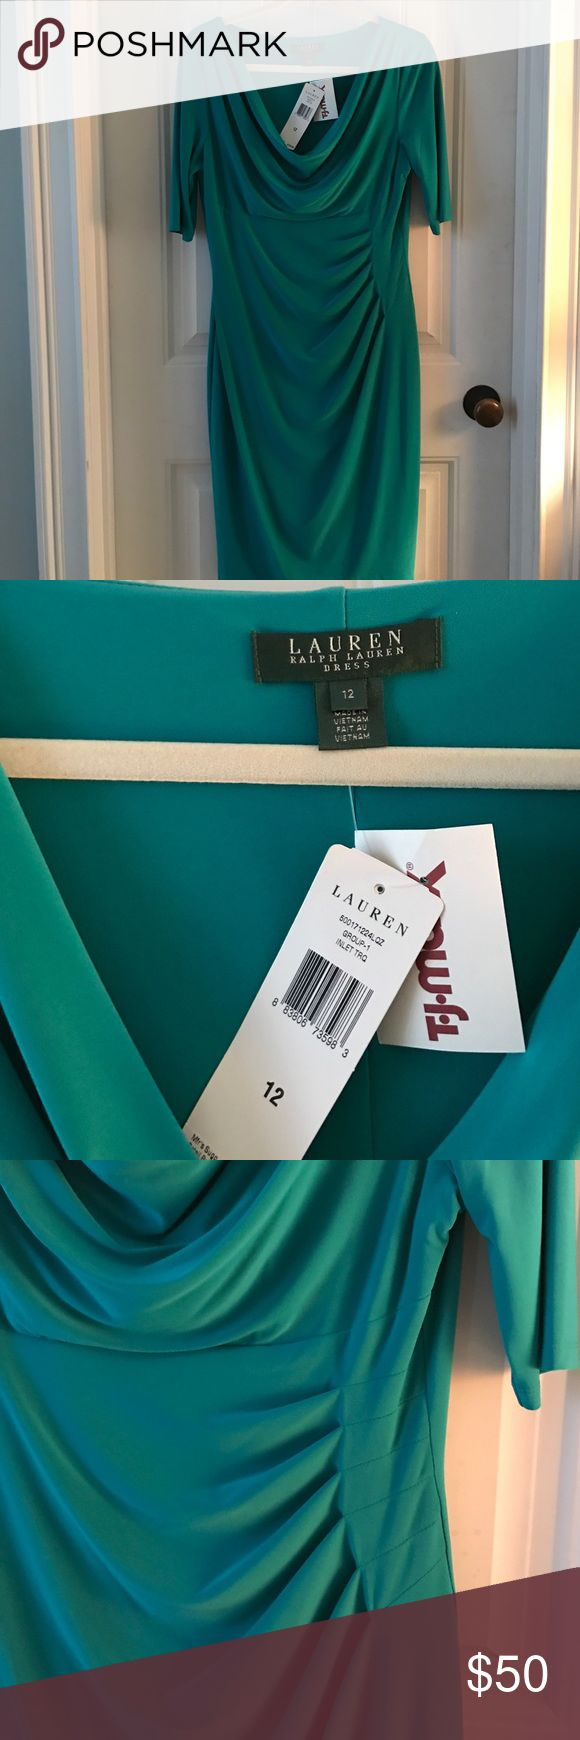 Lauren by Ralph Lauren Dress Gorgeous vibrant color. This fit is super flattering, and the 3/4 sleeves make it versatile. Perfect for work, dinner date, or weddings❤️ Lauren Ralph Lauren Dresses Midi